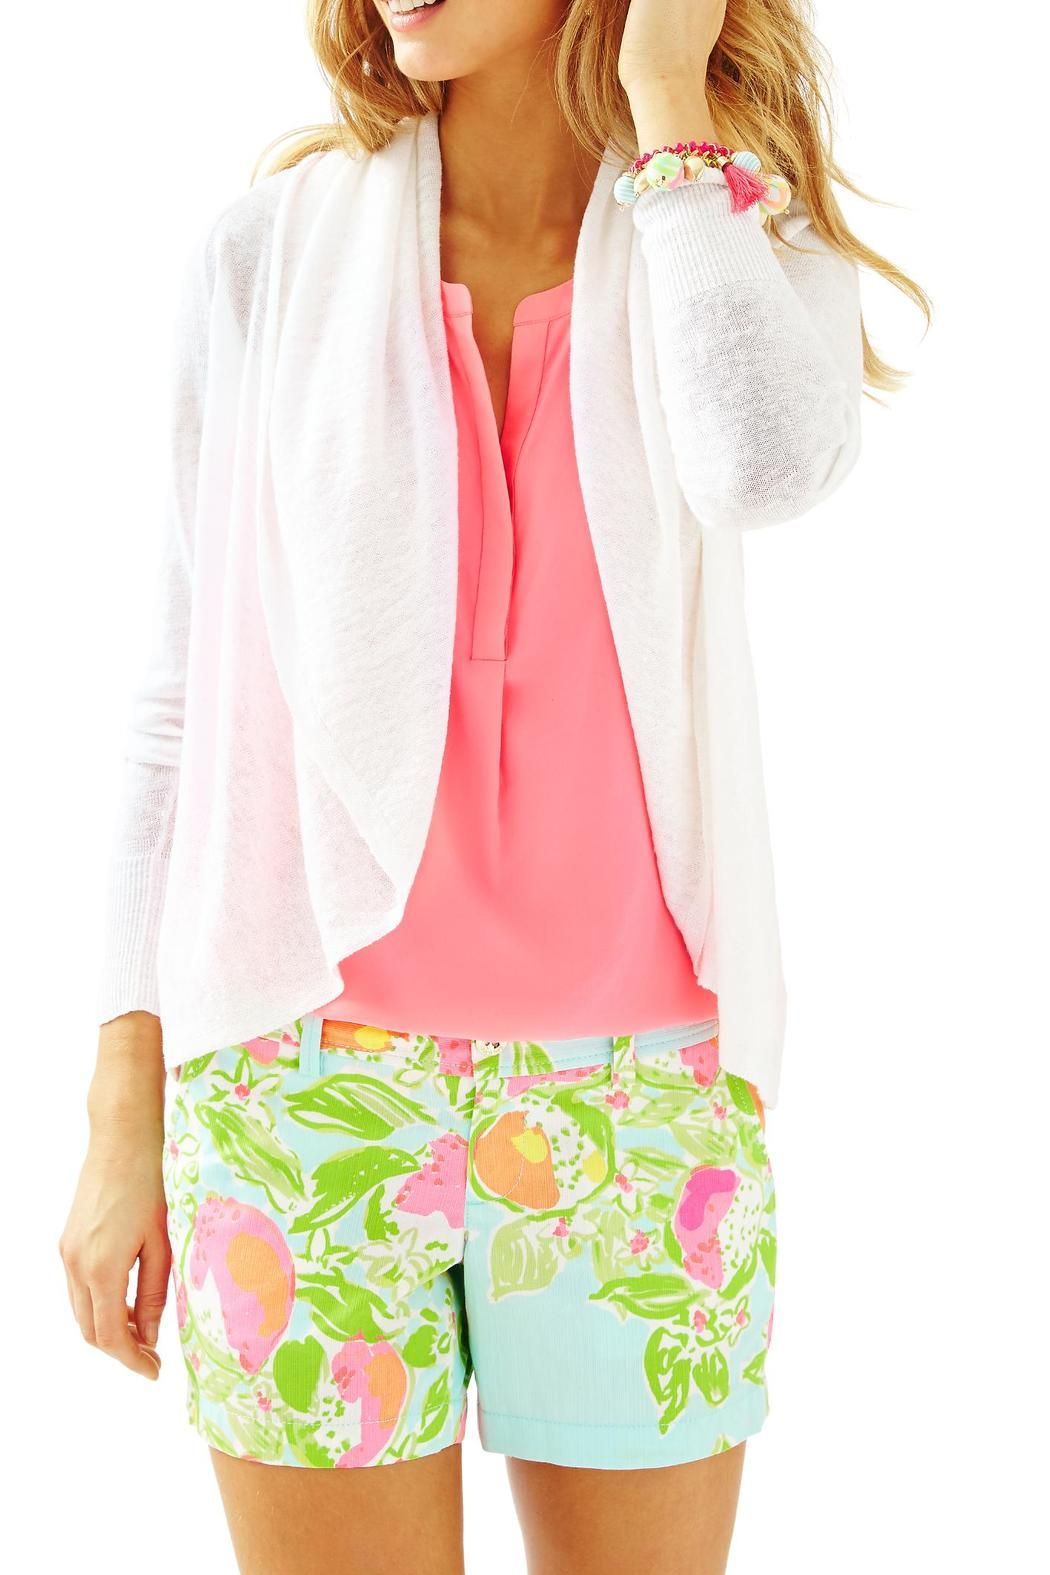 This cardigan is a linen open cardigan with shirring at the back seam. This is the ultimate summer cardigan. Sometimes you just need a light layer on a cool evening and this cardigan fits the bill.   Holden Cardigan by Lilly Pulitzer. Clothing - Sweaters - Cardigans Sandestin Golf and Beach Resort, Florida